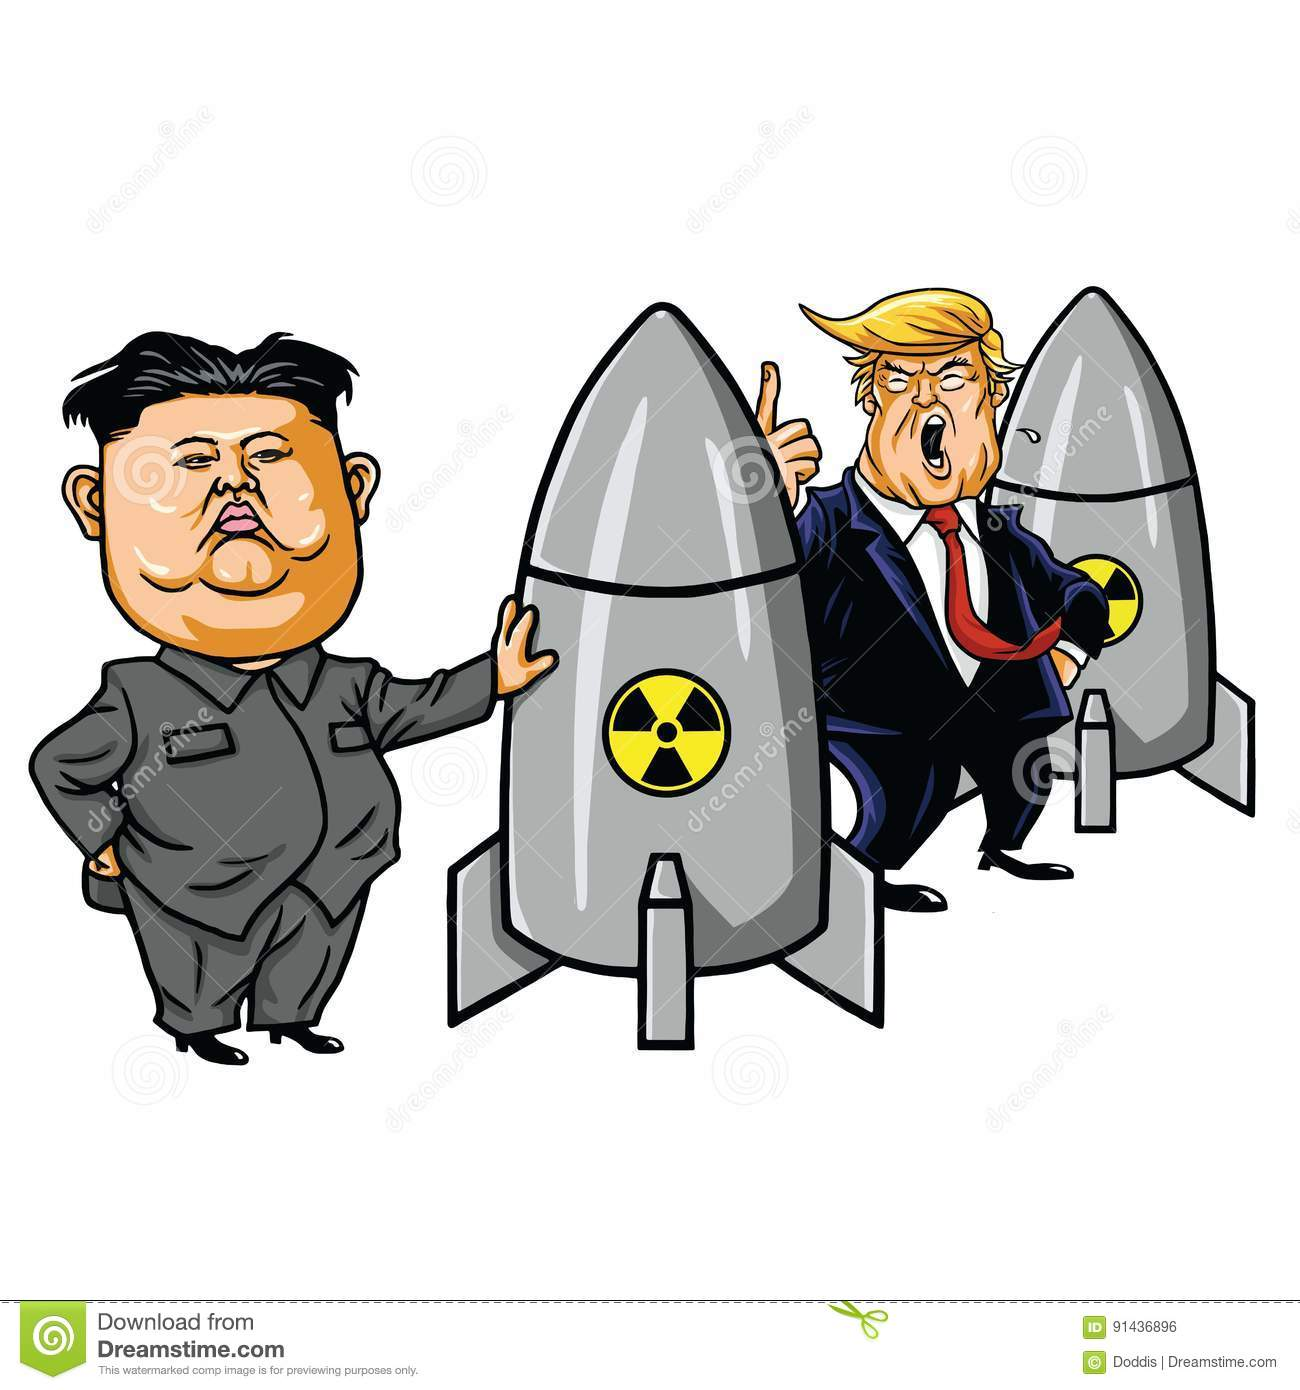 Kim Jong-FN vs Donald Trump Cartoon Caricature Vector